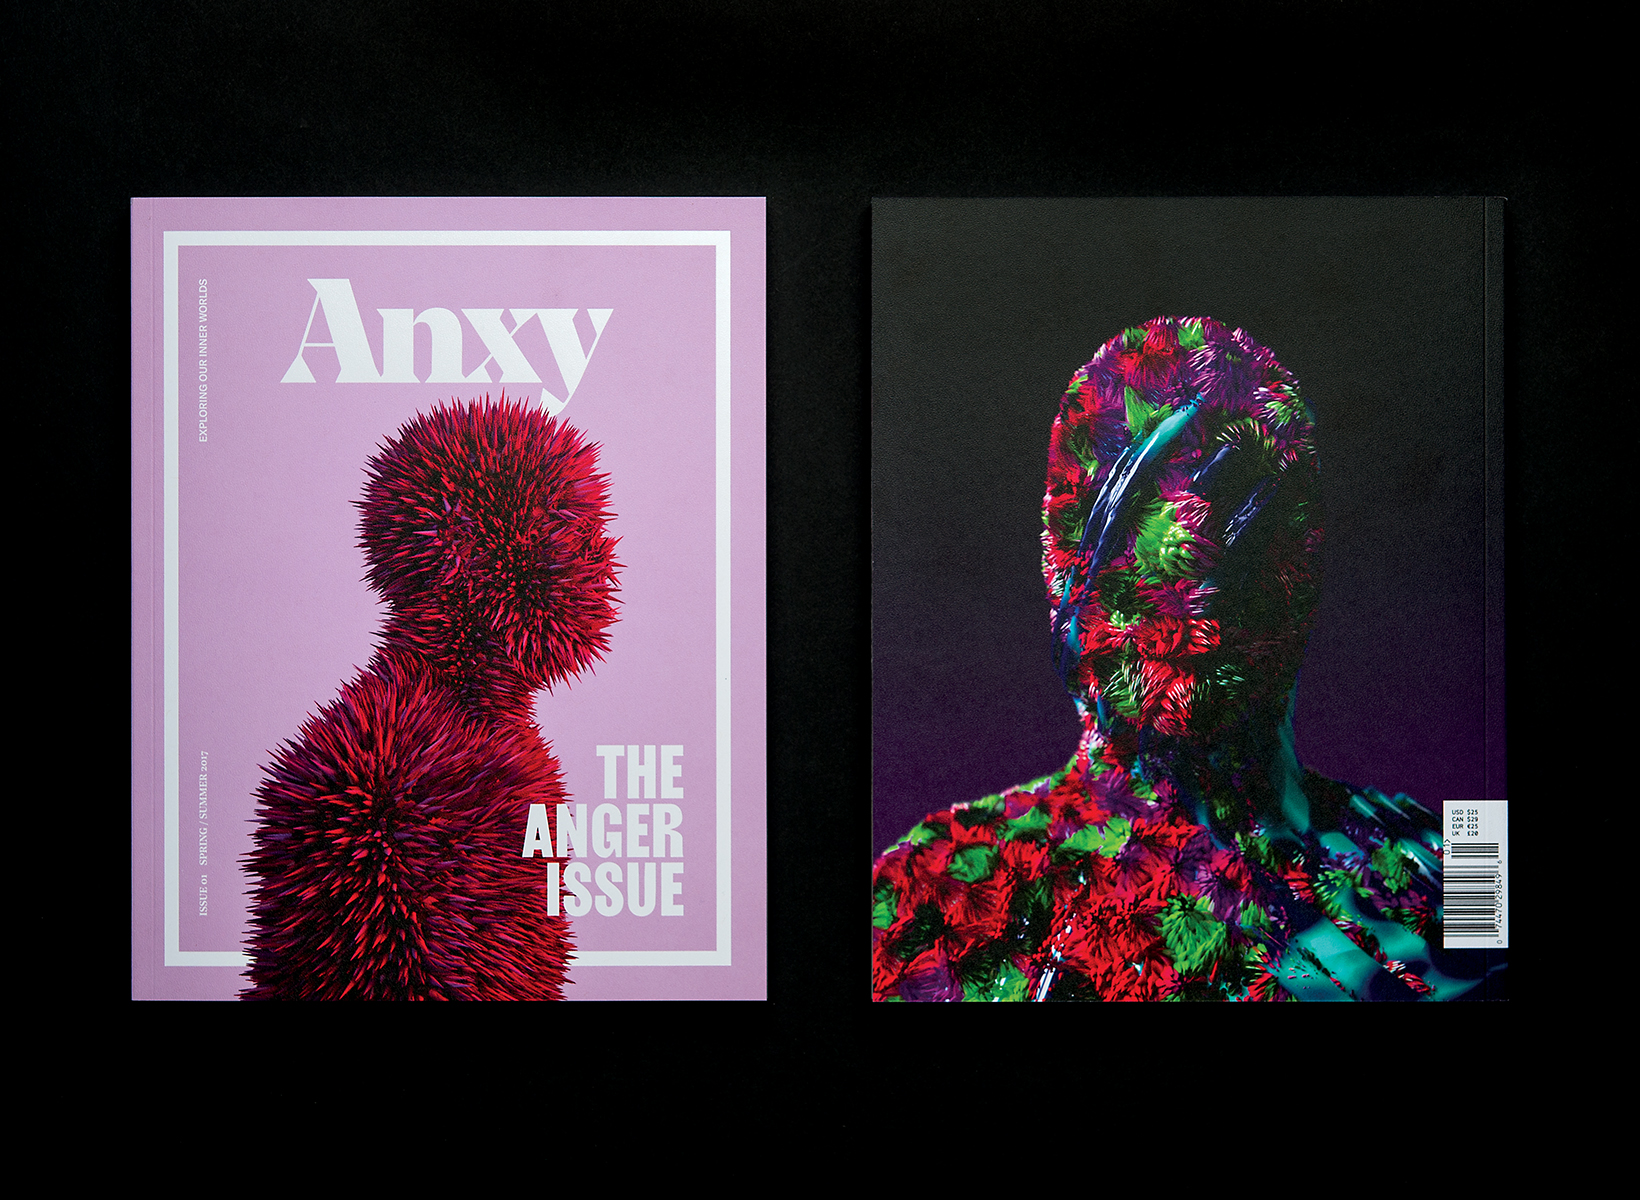 Indhira Rojas is the founder of Anxy, a magazine about creatives' inner worlds. Image courtesy of Rojas.